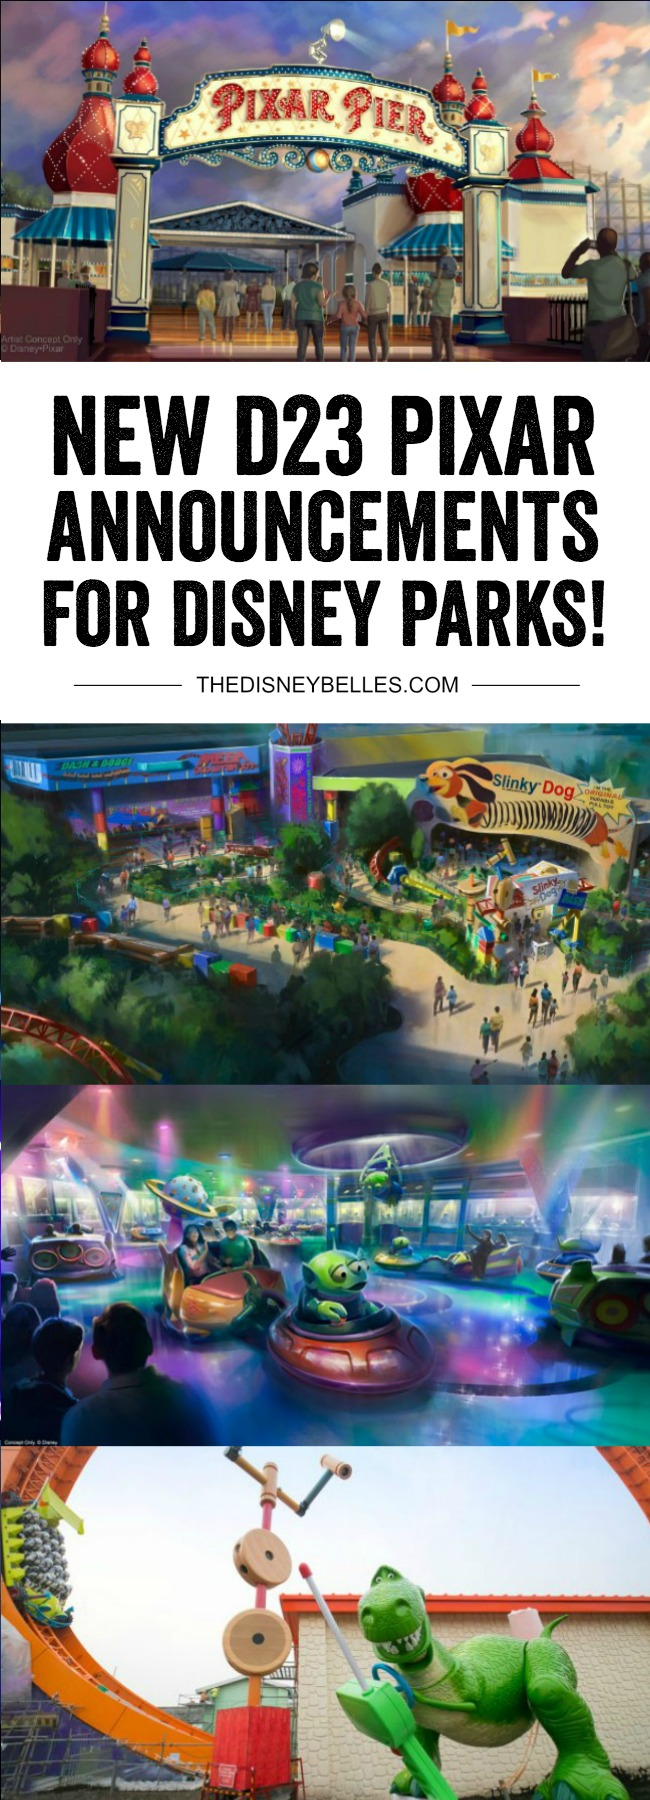 New Pixar Announcements for Disney Parks from D23! #Disney #D23 #Pixar